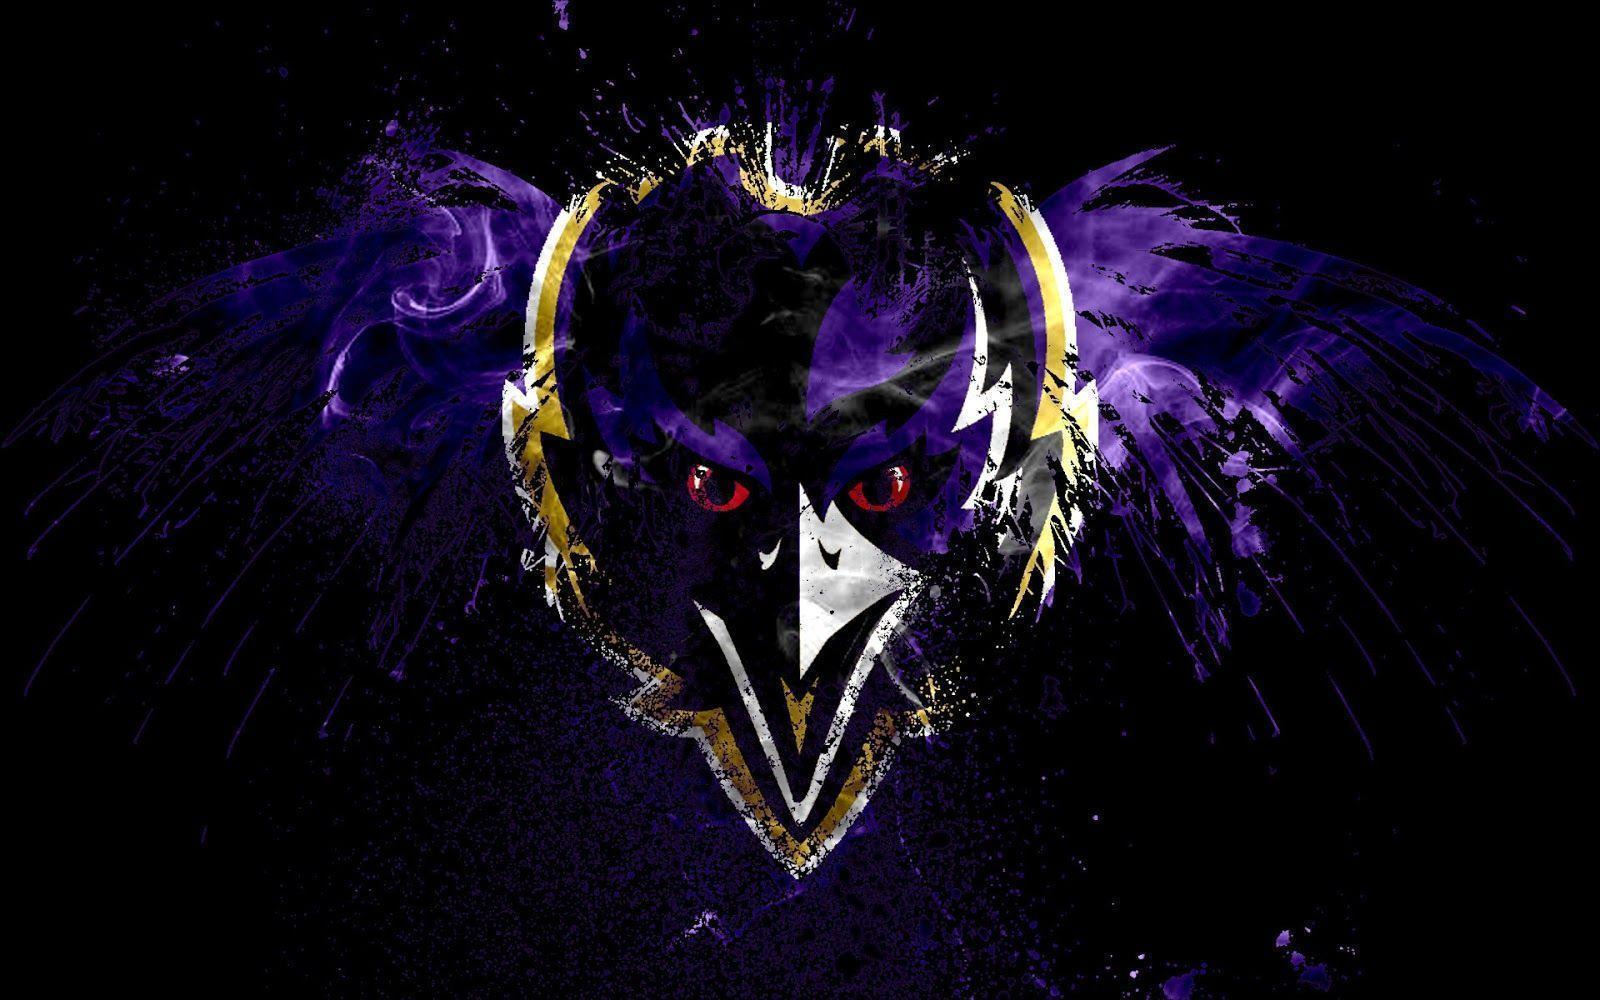 Baltimore Ravens Logo Wallpaper - WallpaperSafari